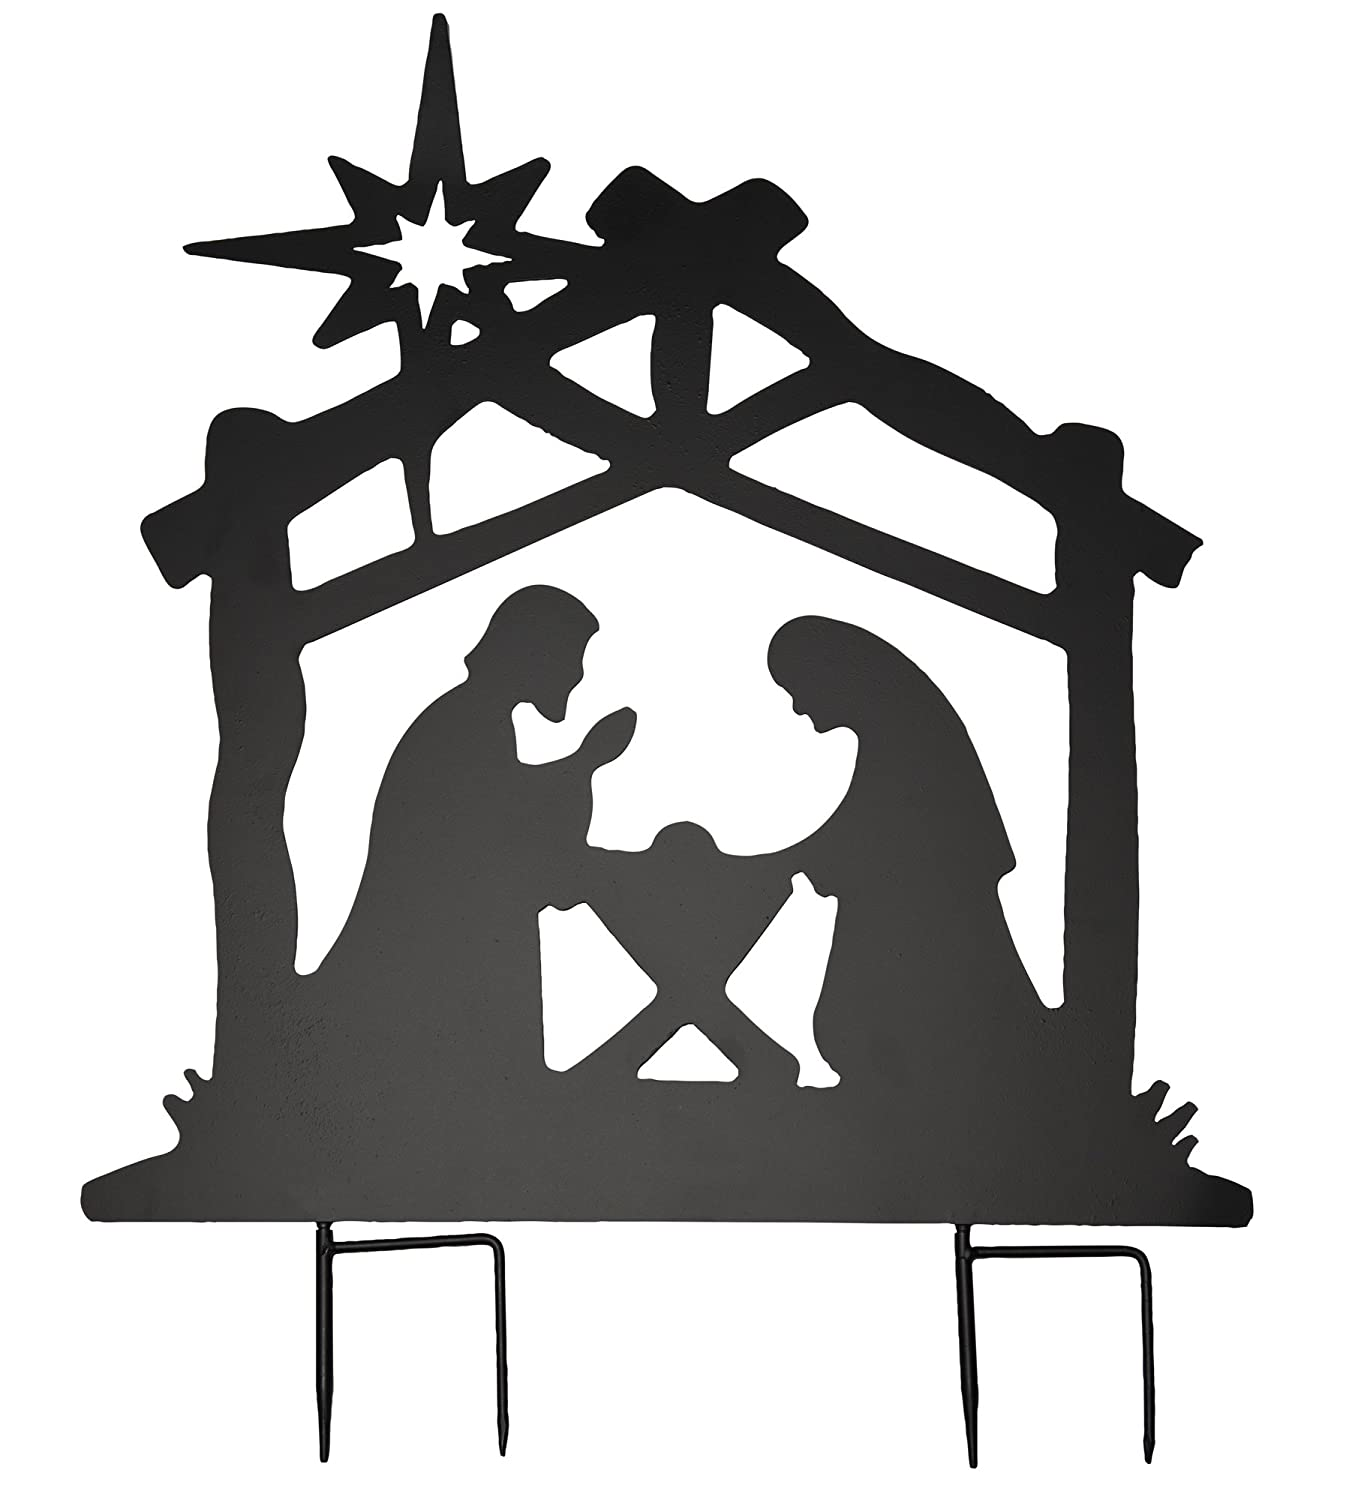 The Paragon Nativity Metal Yard Stake - Instant Holiday Decorating with This Holy Family Silhouette Scene